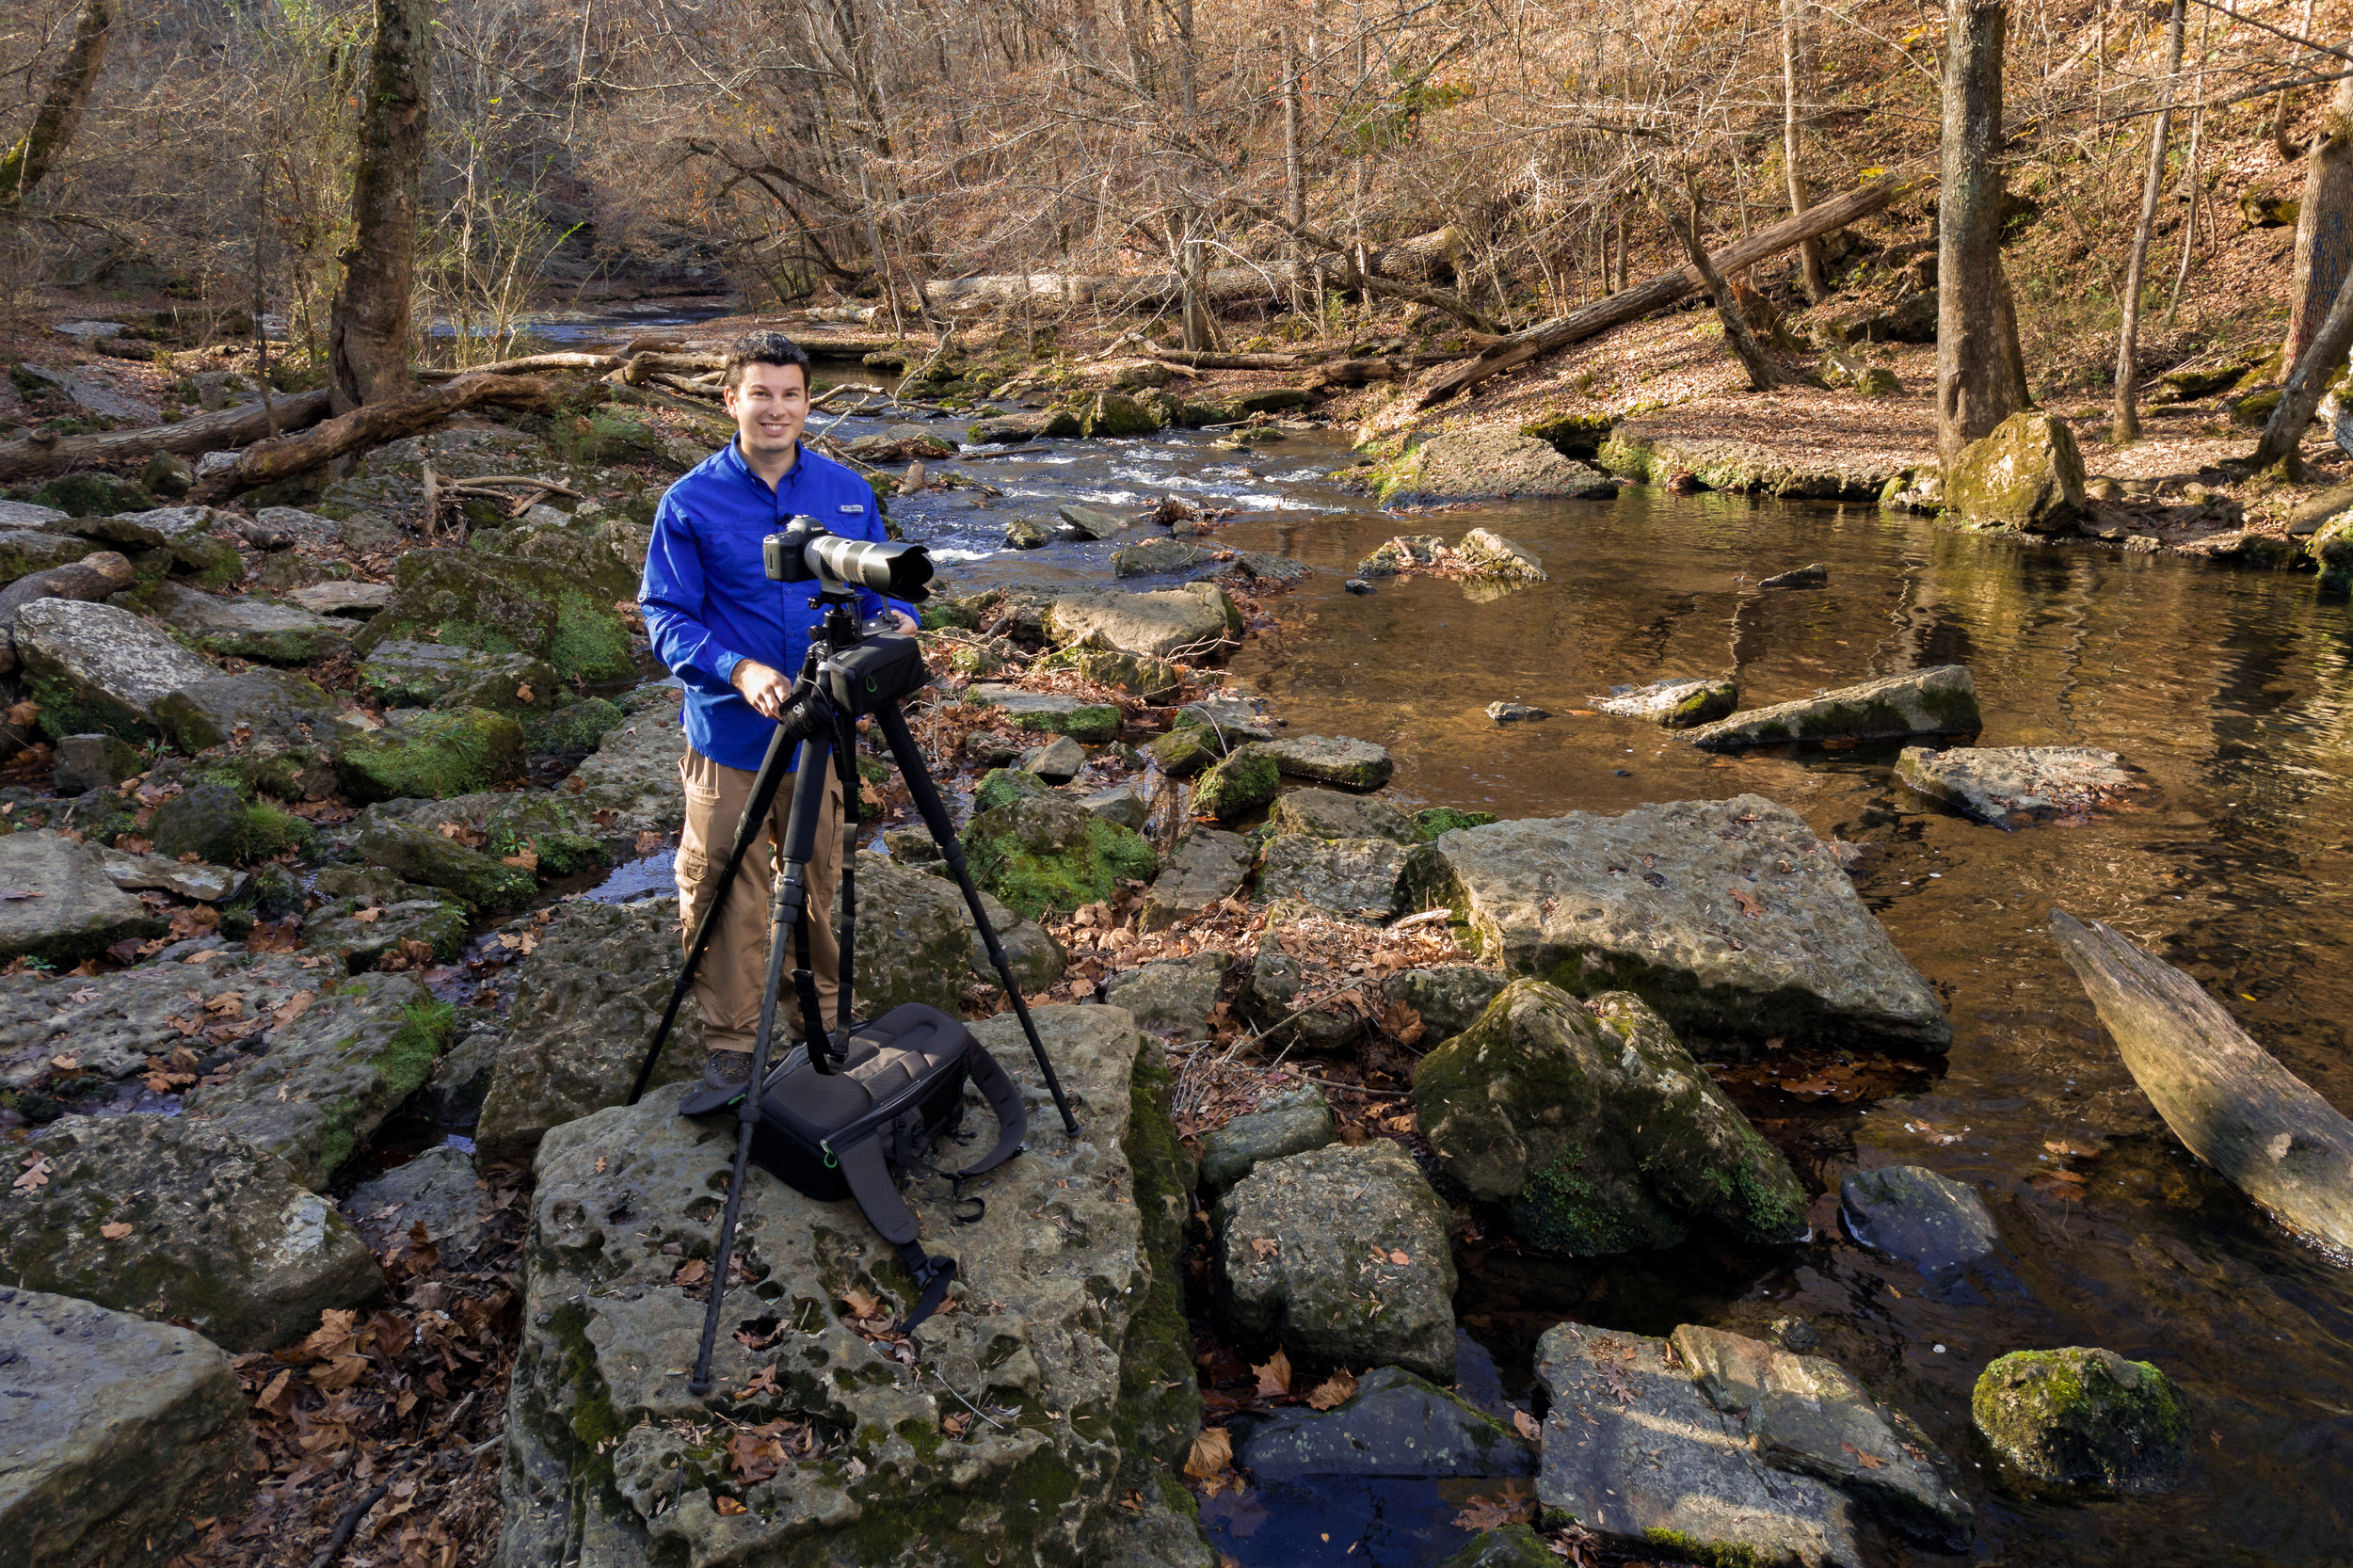 Setting up the camera to shoot some waterfall details at beautiful Rutledge Falls.